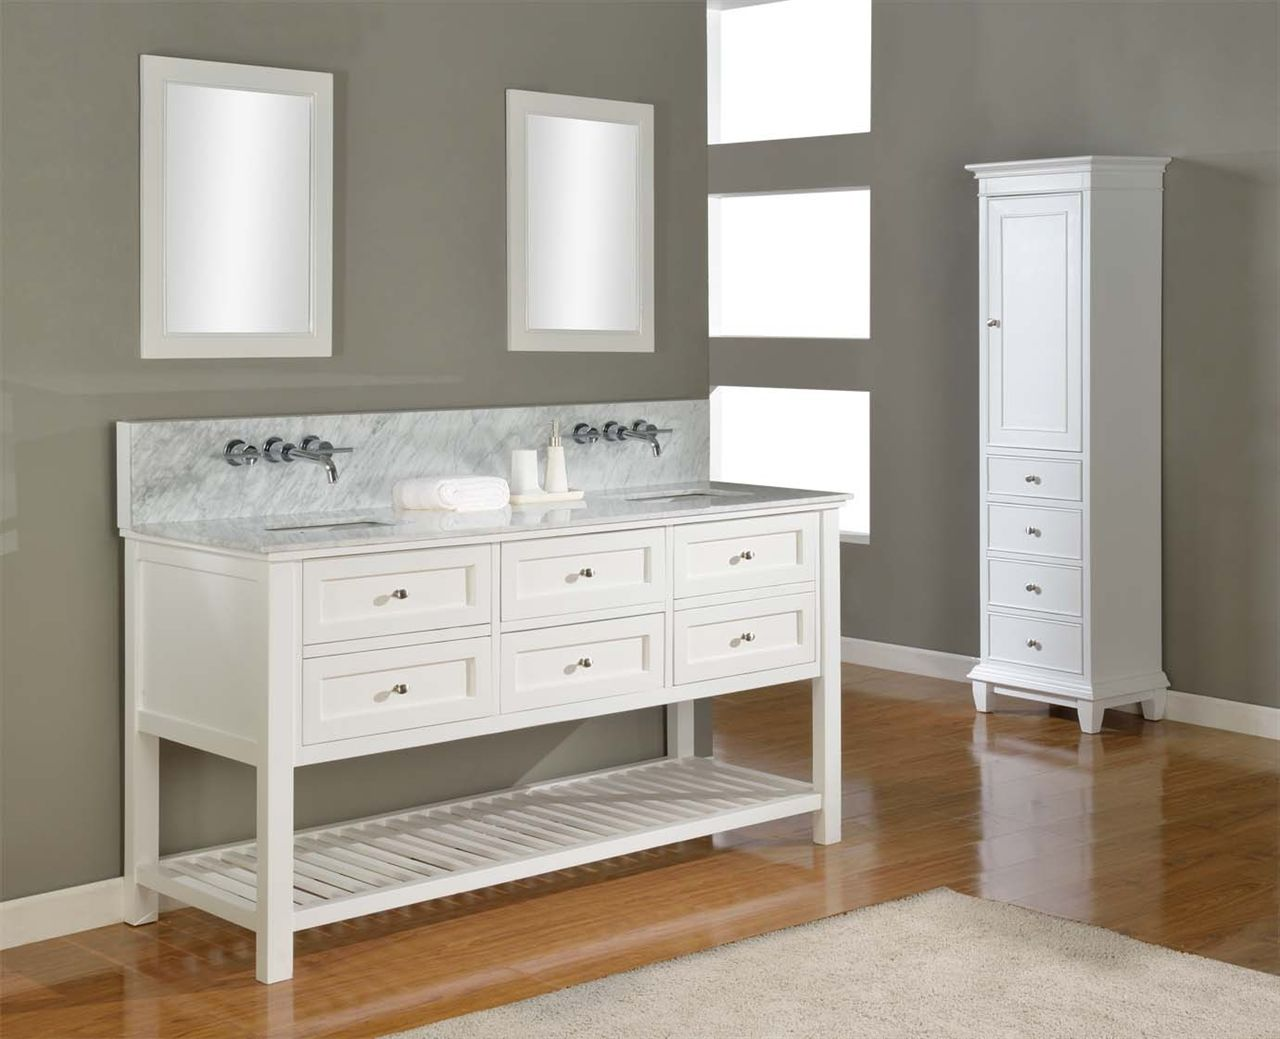 top space saver bathroom cabinet portrait-Beautiful Space Saver Bathroom Cabinet Gallery